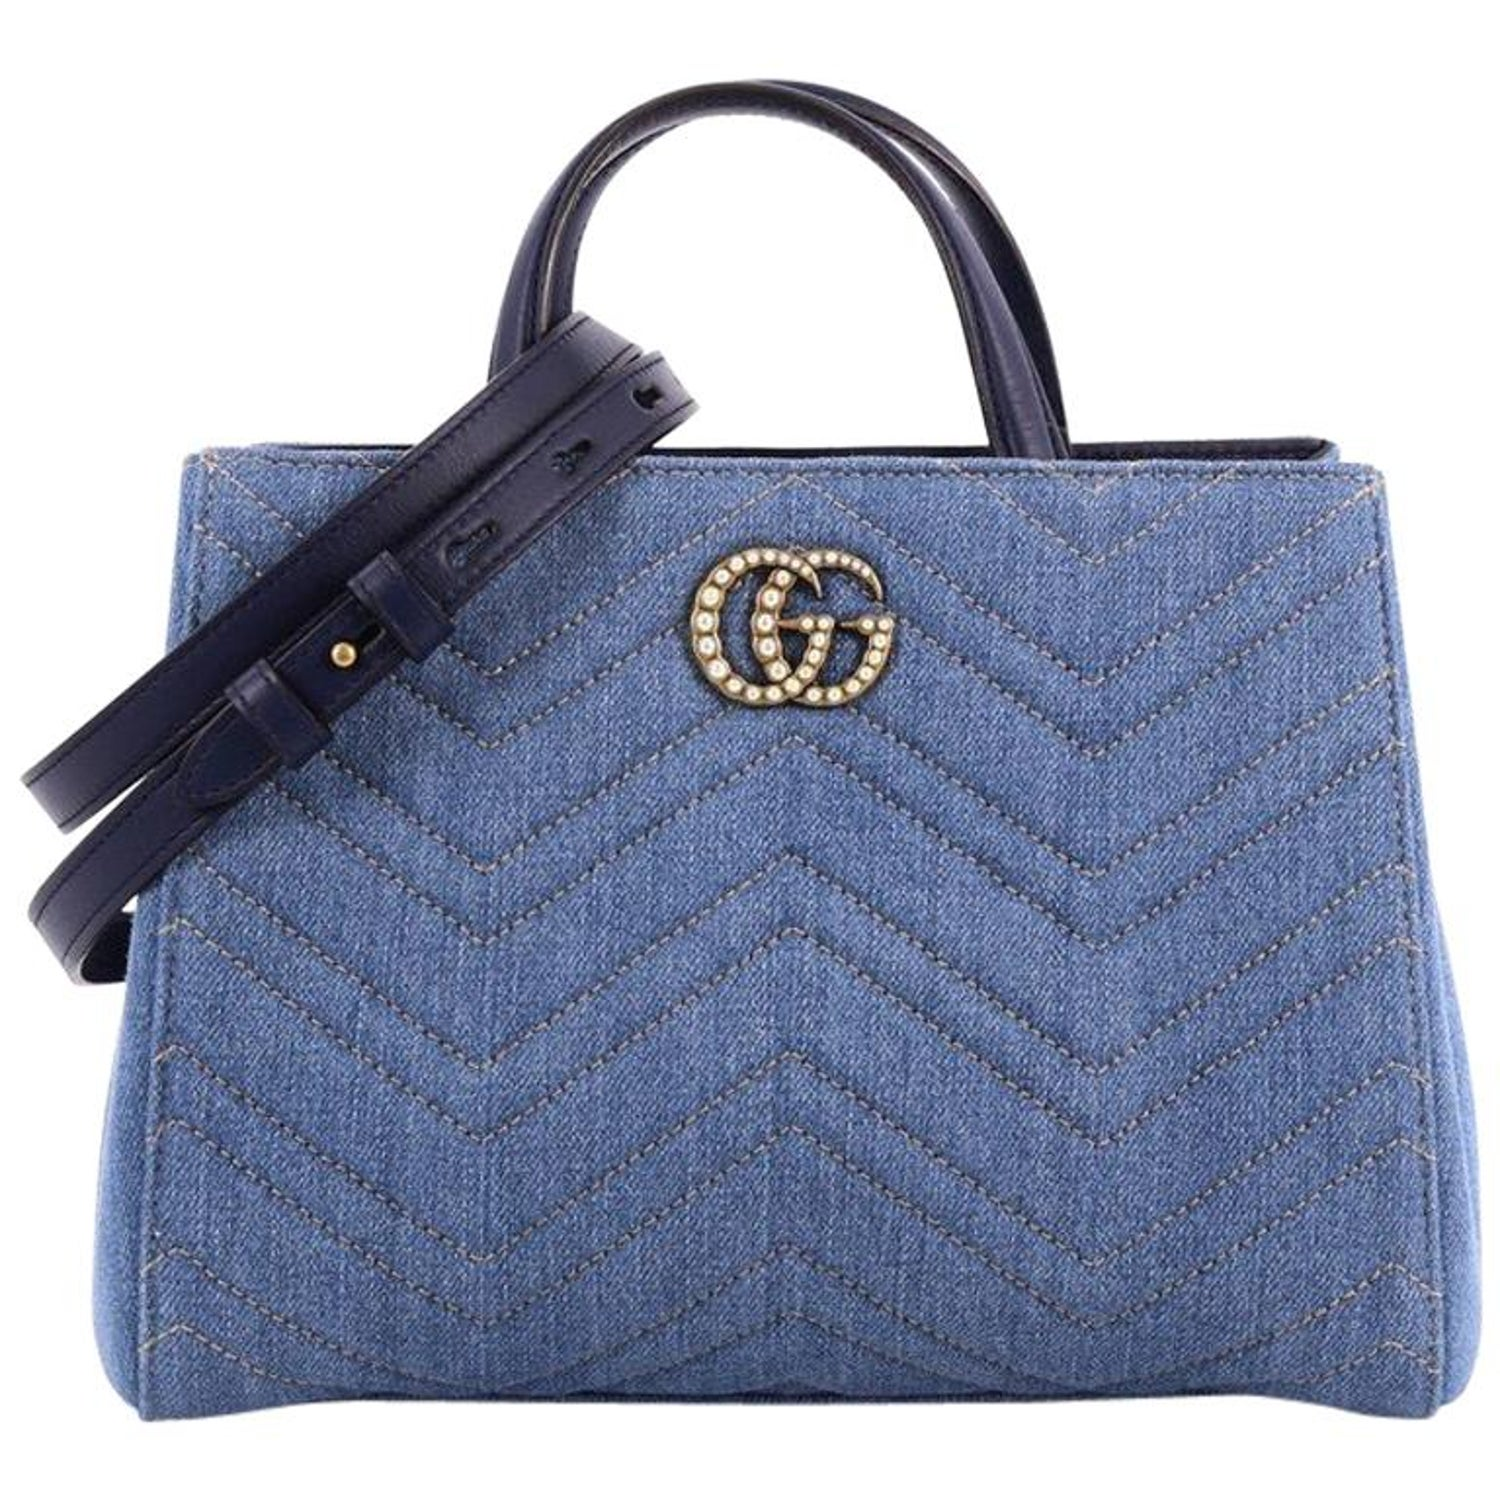 72f5660c121f Gucci Pearly GG Marmont Tote Matelasse Denim Small at 1stdibs